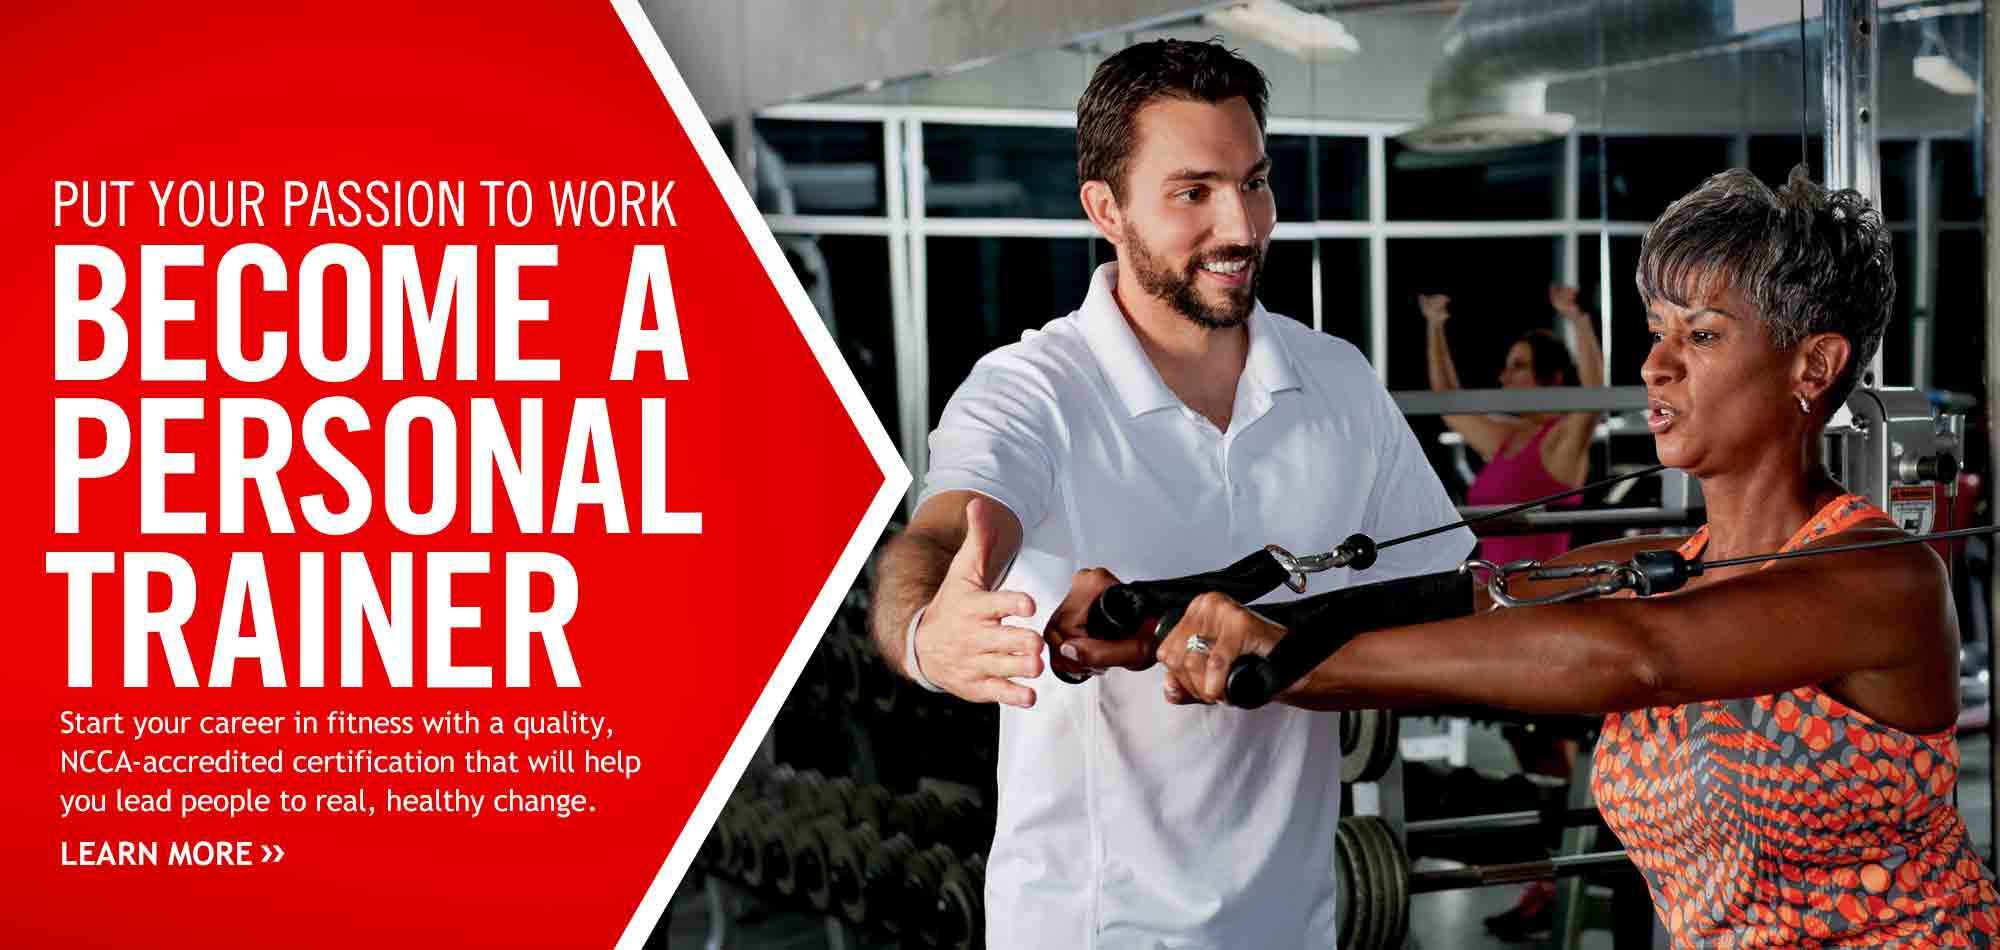 Personal trainer insurance ace